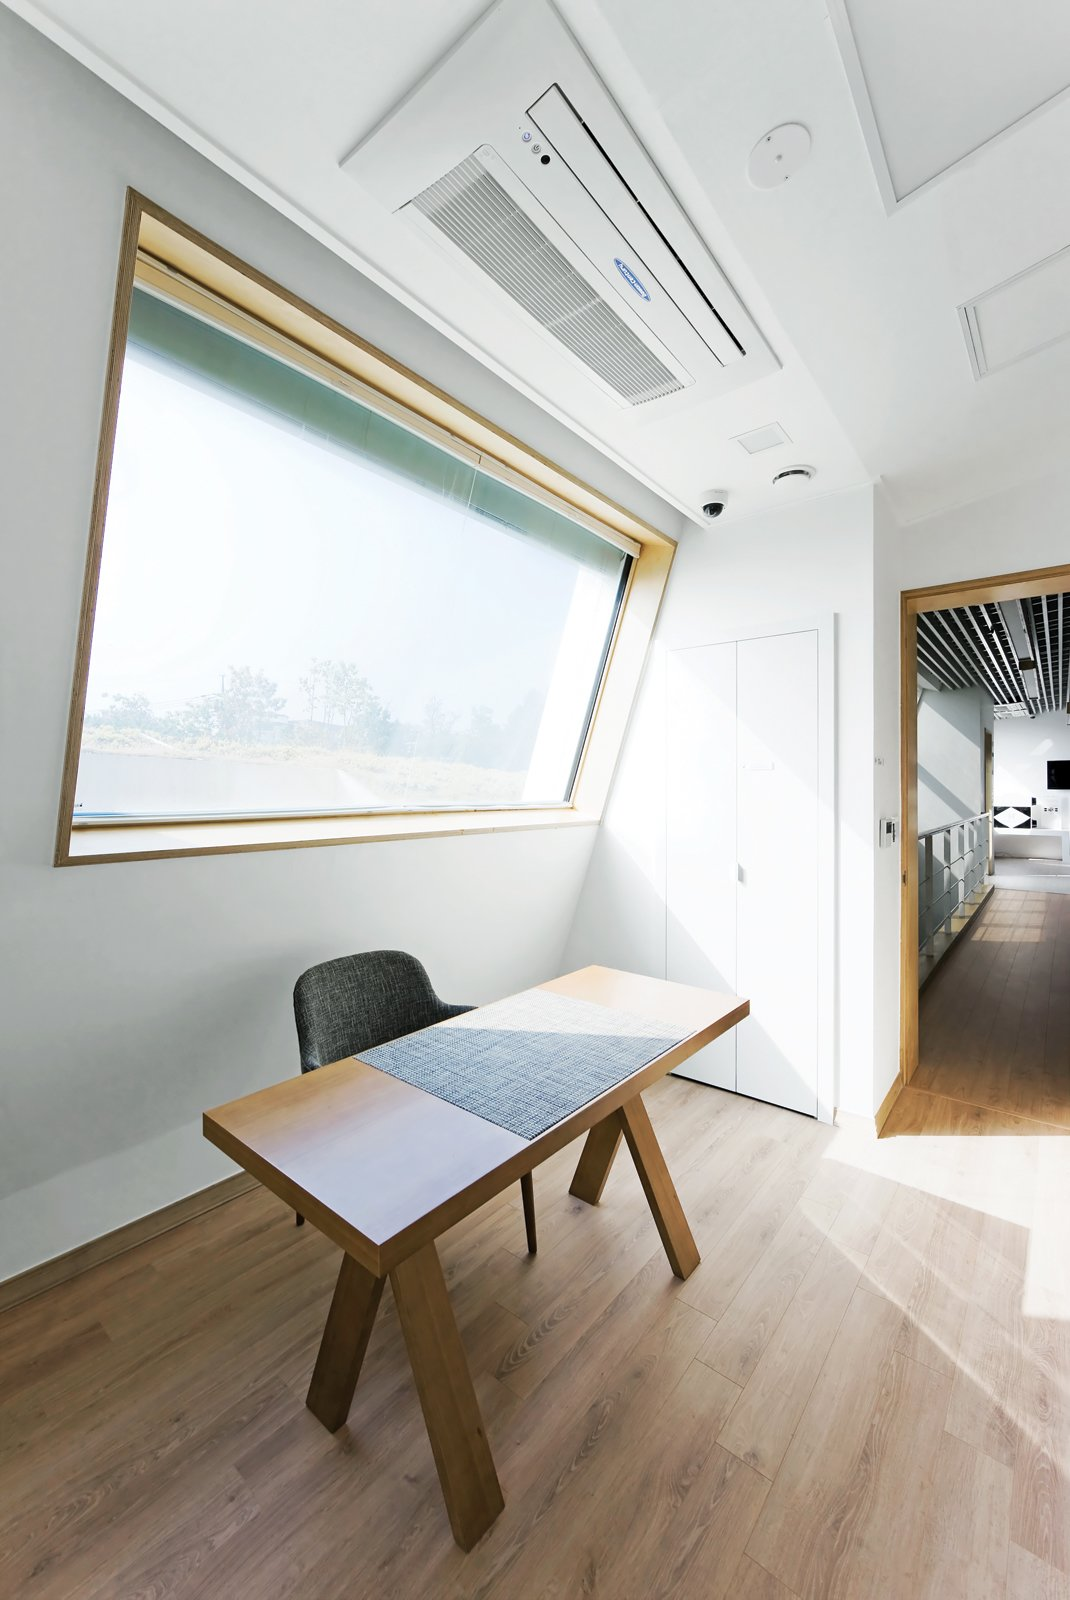 Just Venting  Though a tight thermal envelope is critical to the E+ Home's sustainability,   Kolon's heat recovery ventilation and air filtration systems (above the desk) help ease the load. Modern Green Concept House in South Korea - Photo 4 of 10